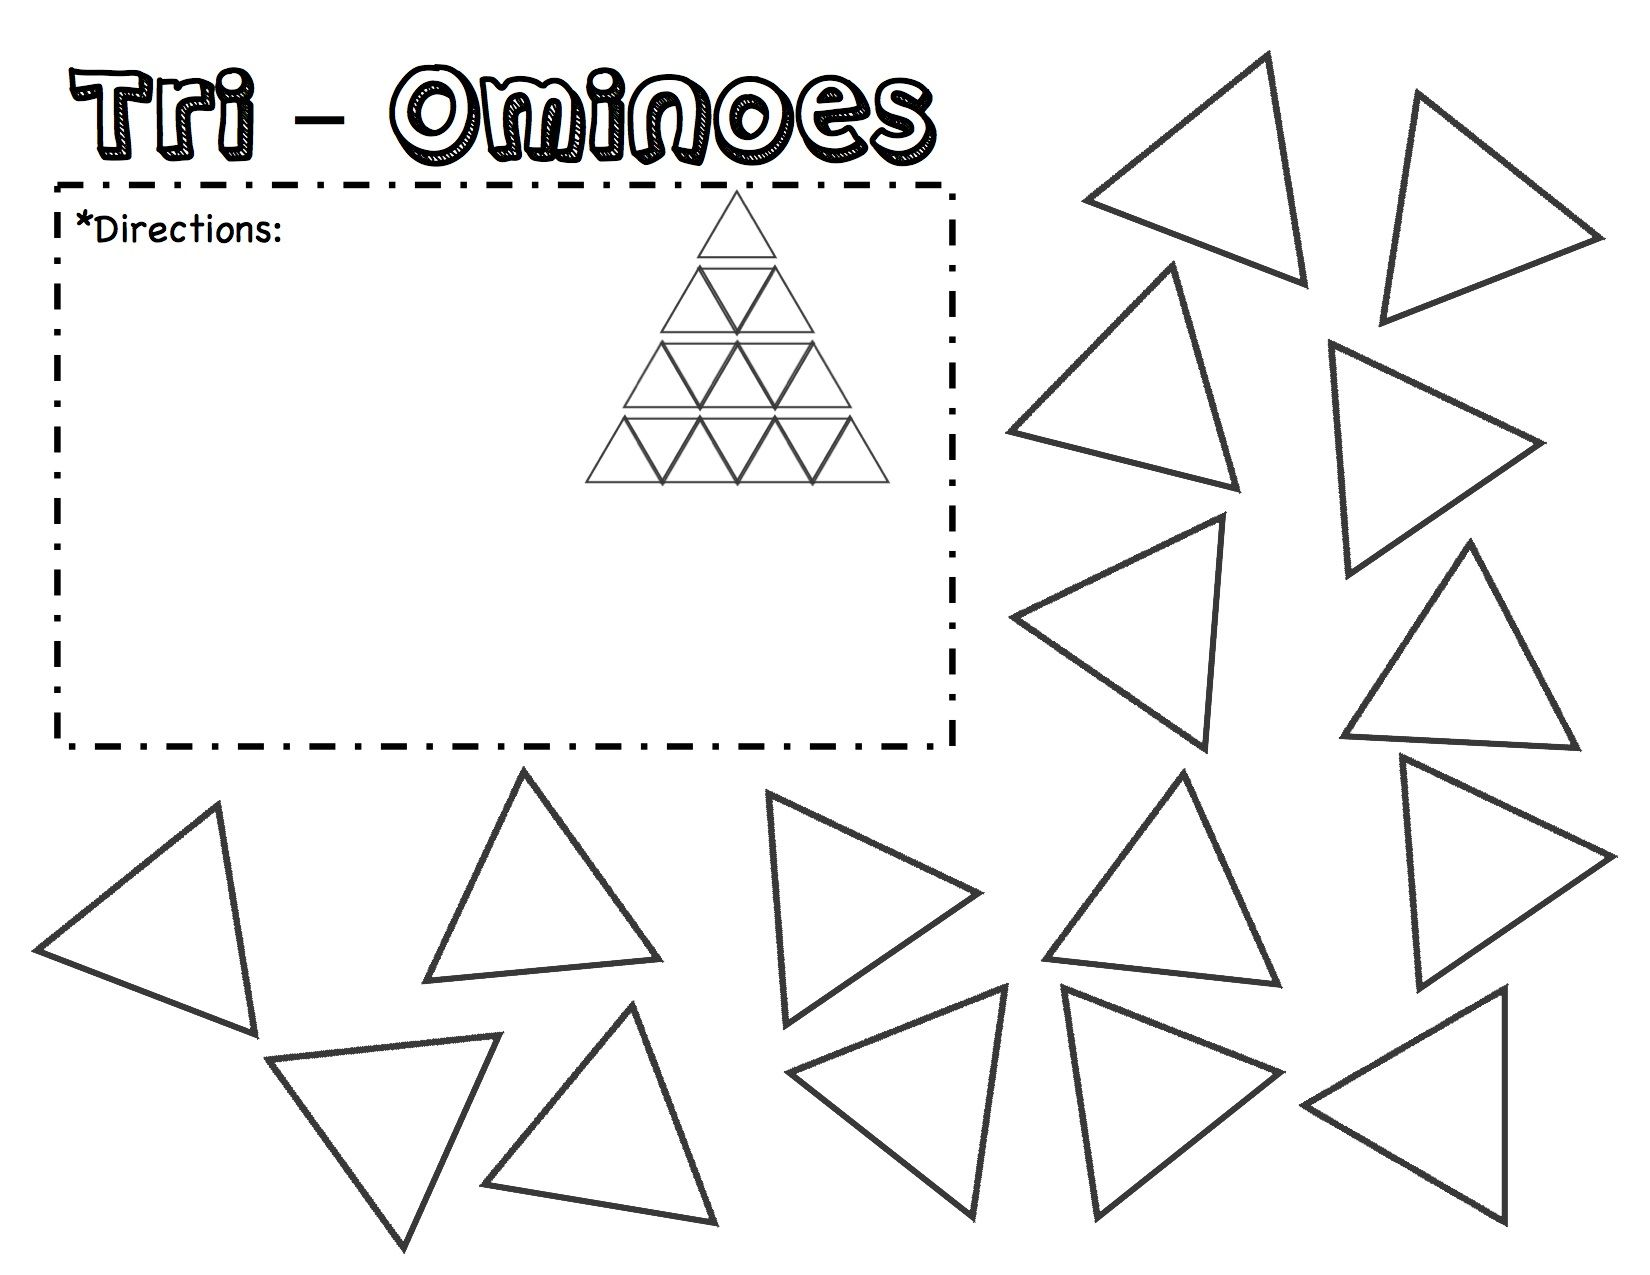 Tri Ominoes Puzzle Template Printable Fill In The